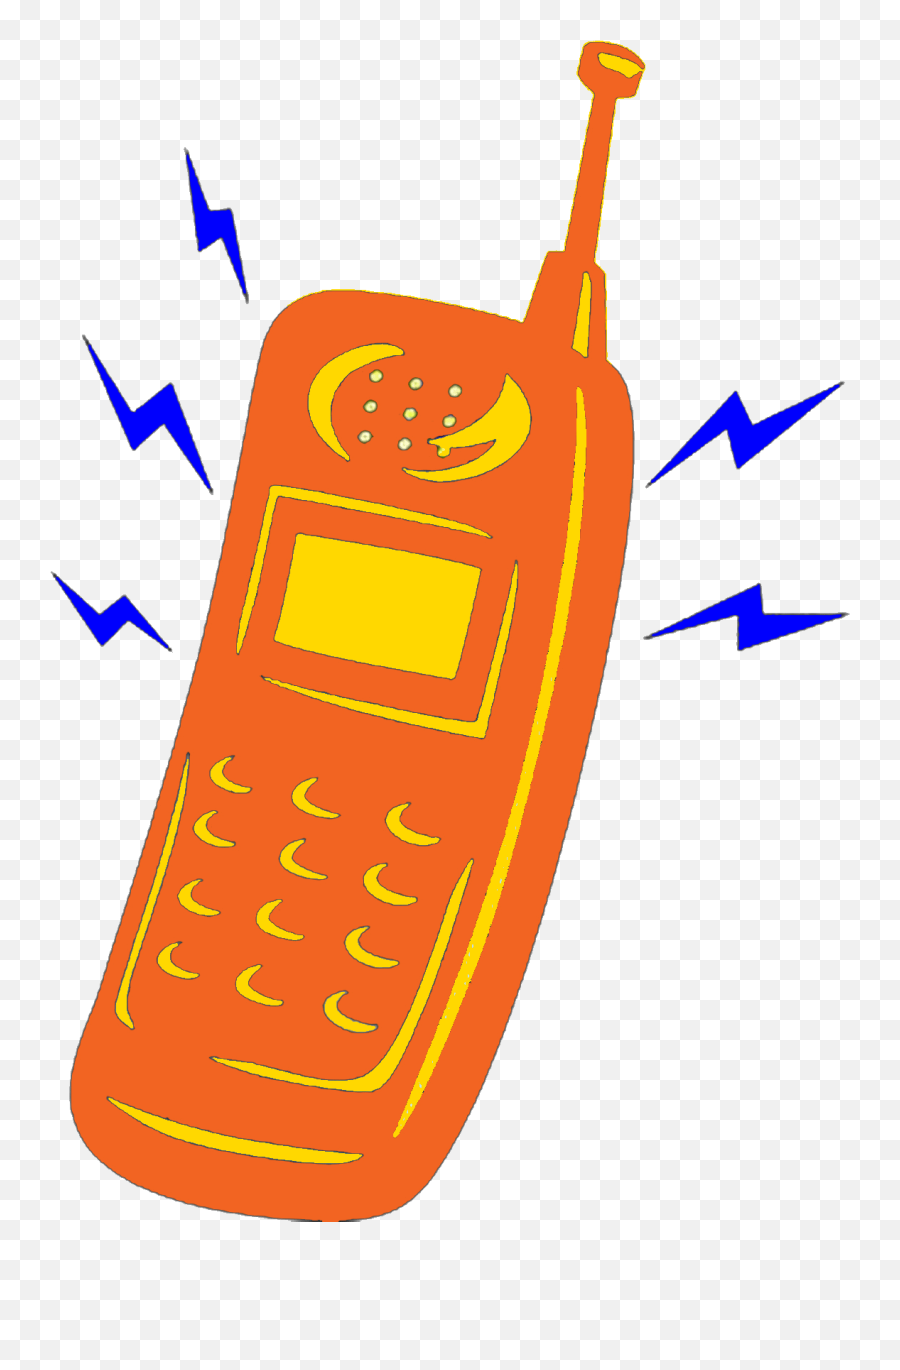 Oranges Clipart Cell Phone Oranges Cell Phone Transparent - Cell Phone Ringing Png Emoji,Cell Phone Emoji